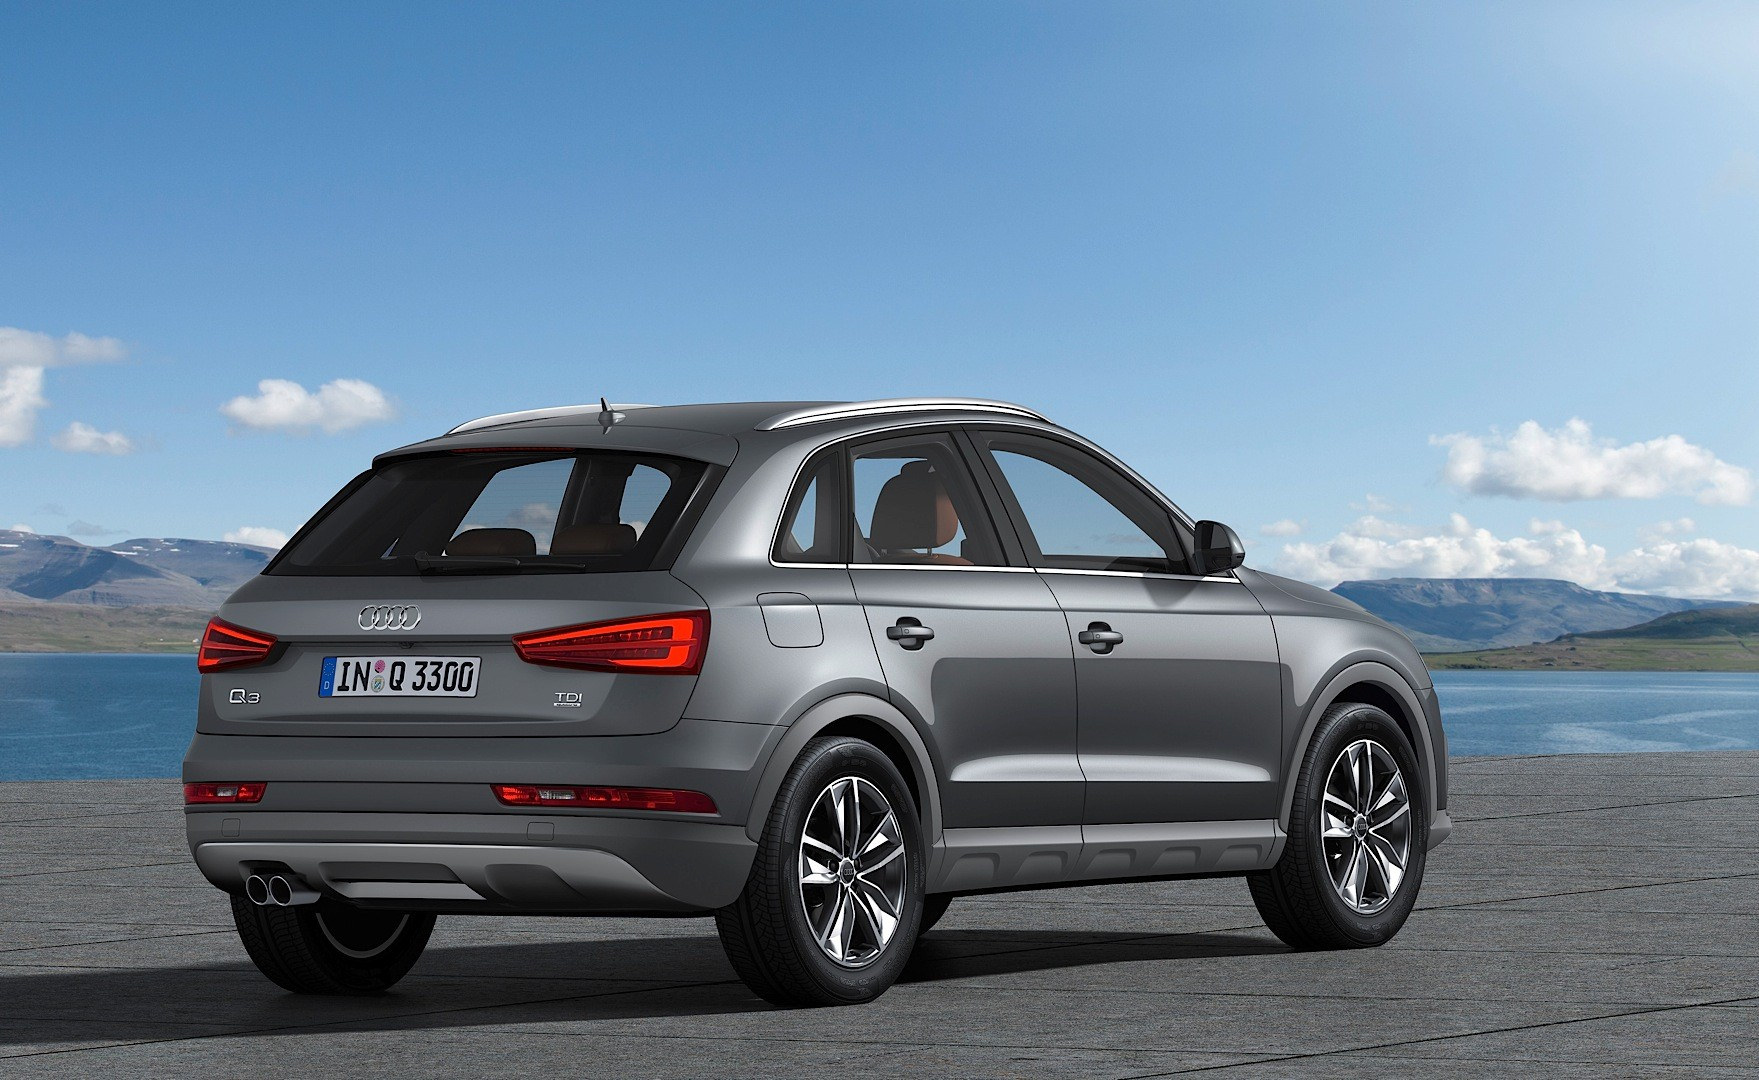 Audi Shares New 2015 Q3 and RS Q3 Photos: Fresh Colors